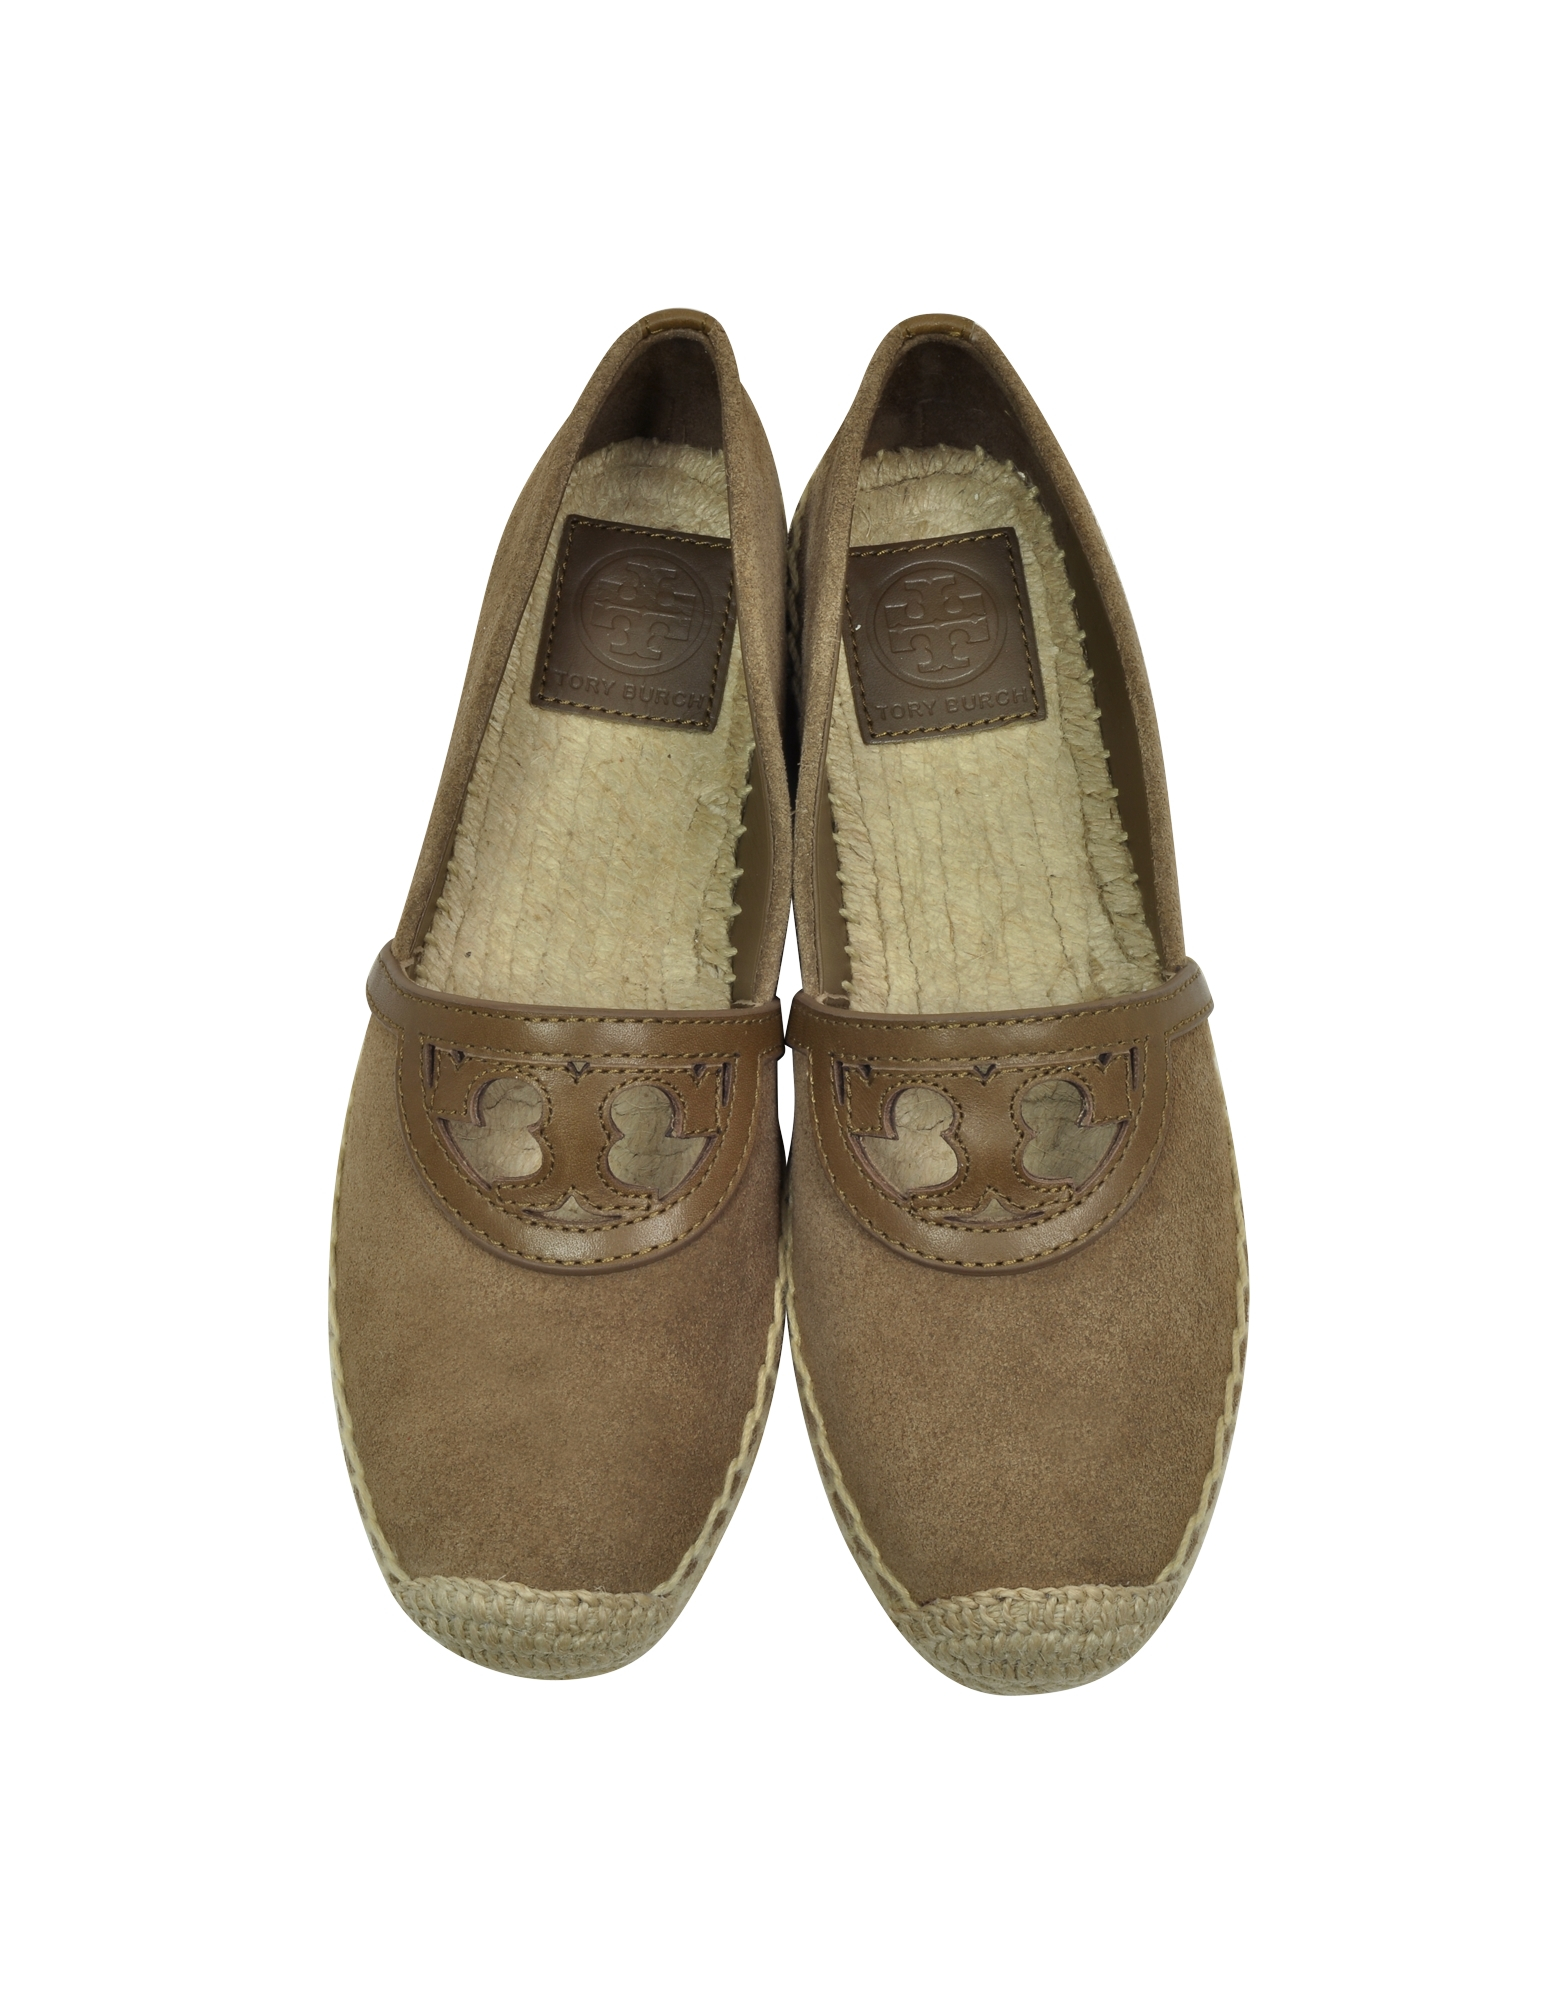 b39ad28e67c1 Lyst - Tory Burch Sidney River Rock Suede And Leather Flat Espadrille